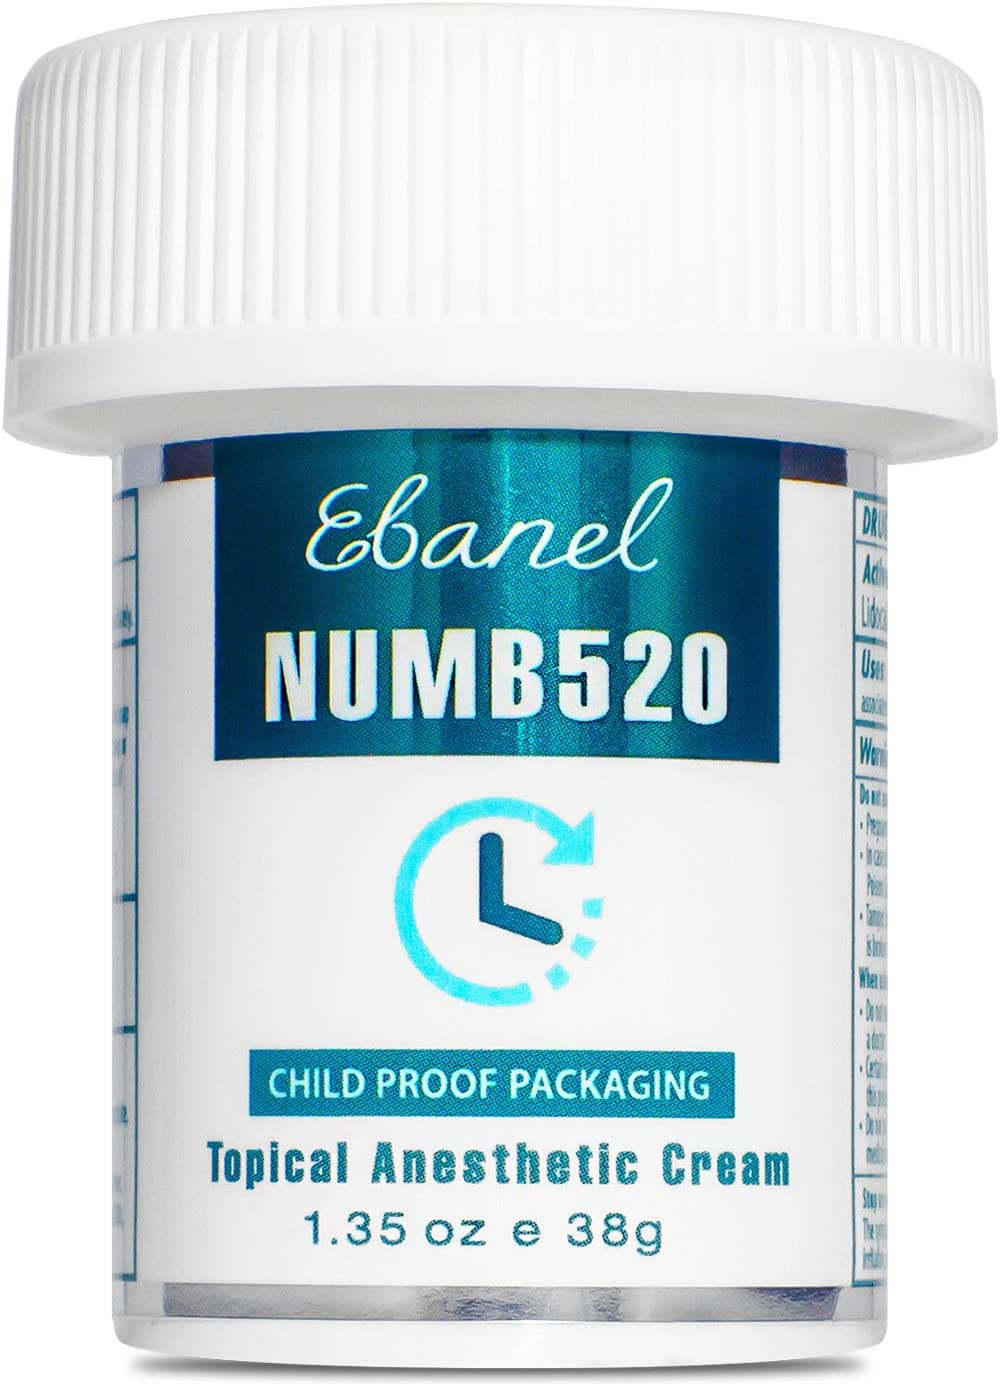 Ebanel numbing cream amazon